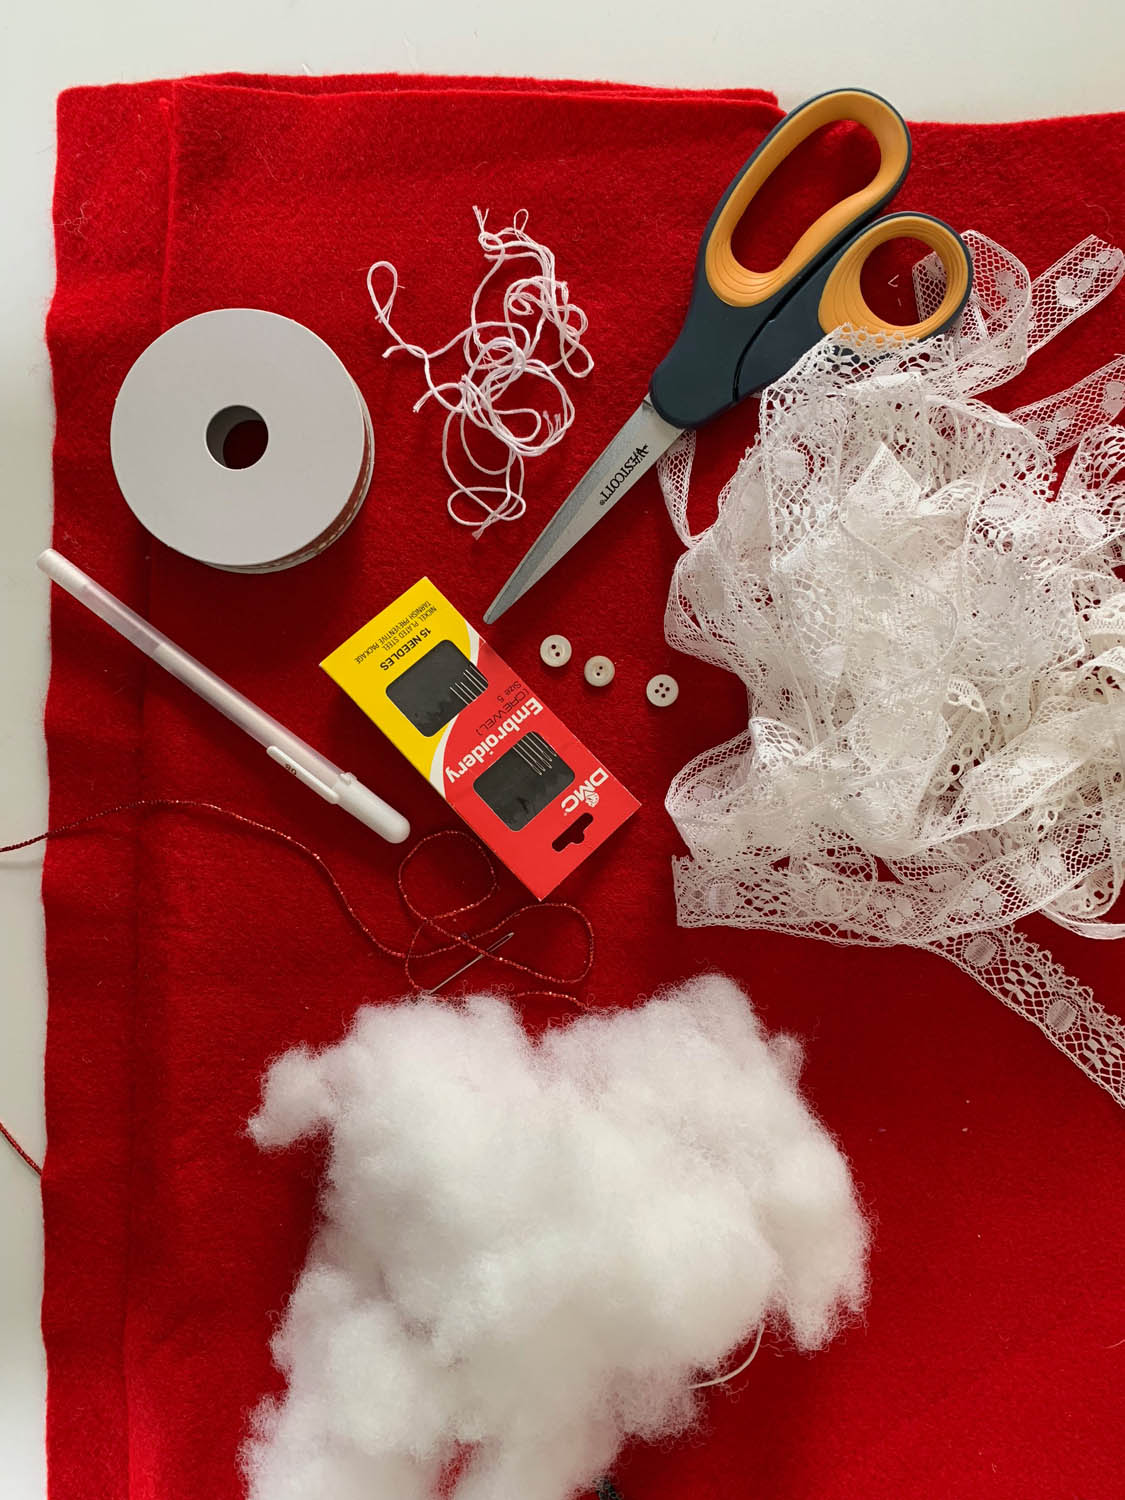 ribbon reel needles embroidery floss ribbon trims and scissors